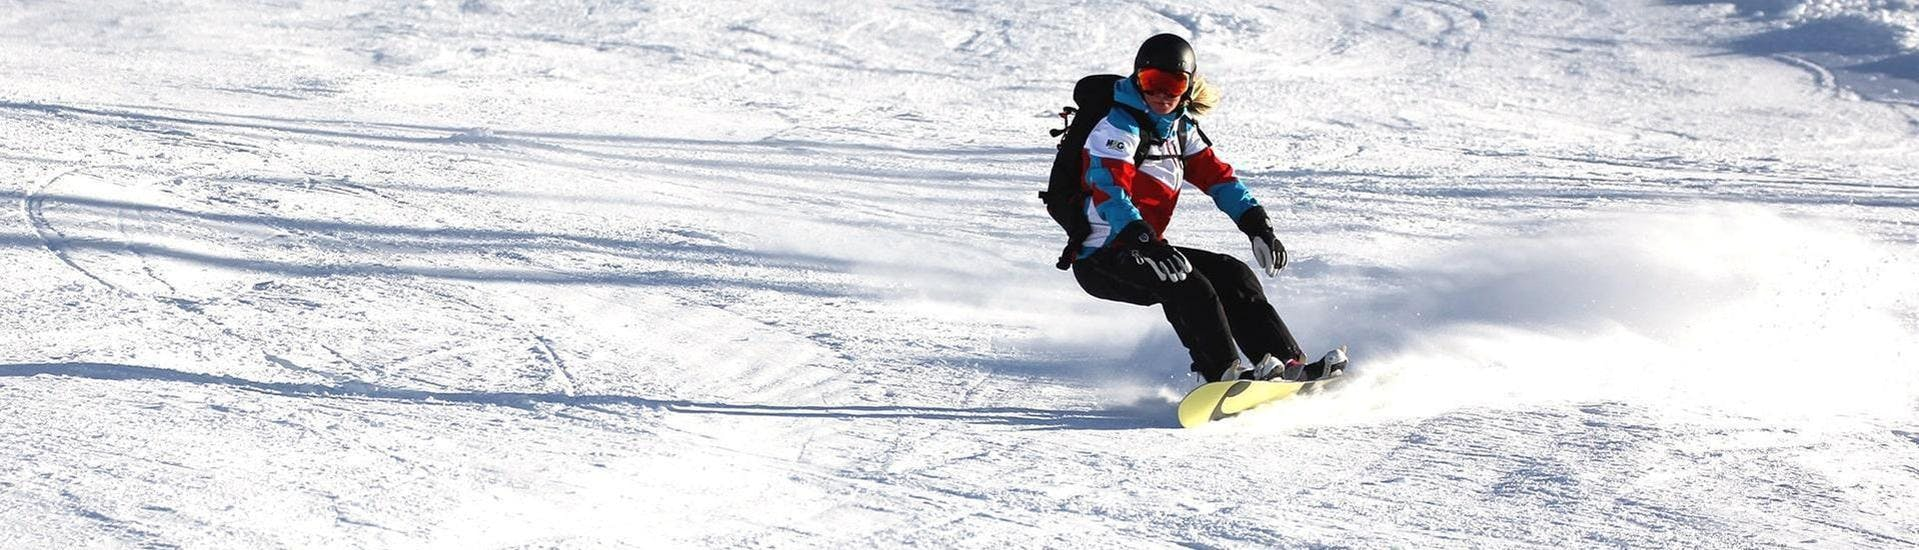 A female snowboarder is snowboarding down a sunny slope during one of her Snowboarding Lessons for Kids & Adults - Full Day - Advanced in the sski resort of Ischgl.